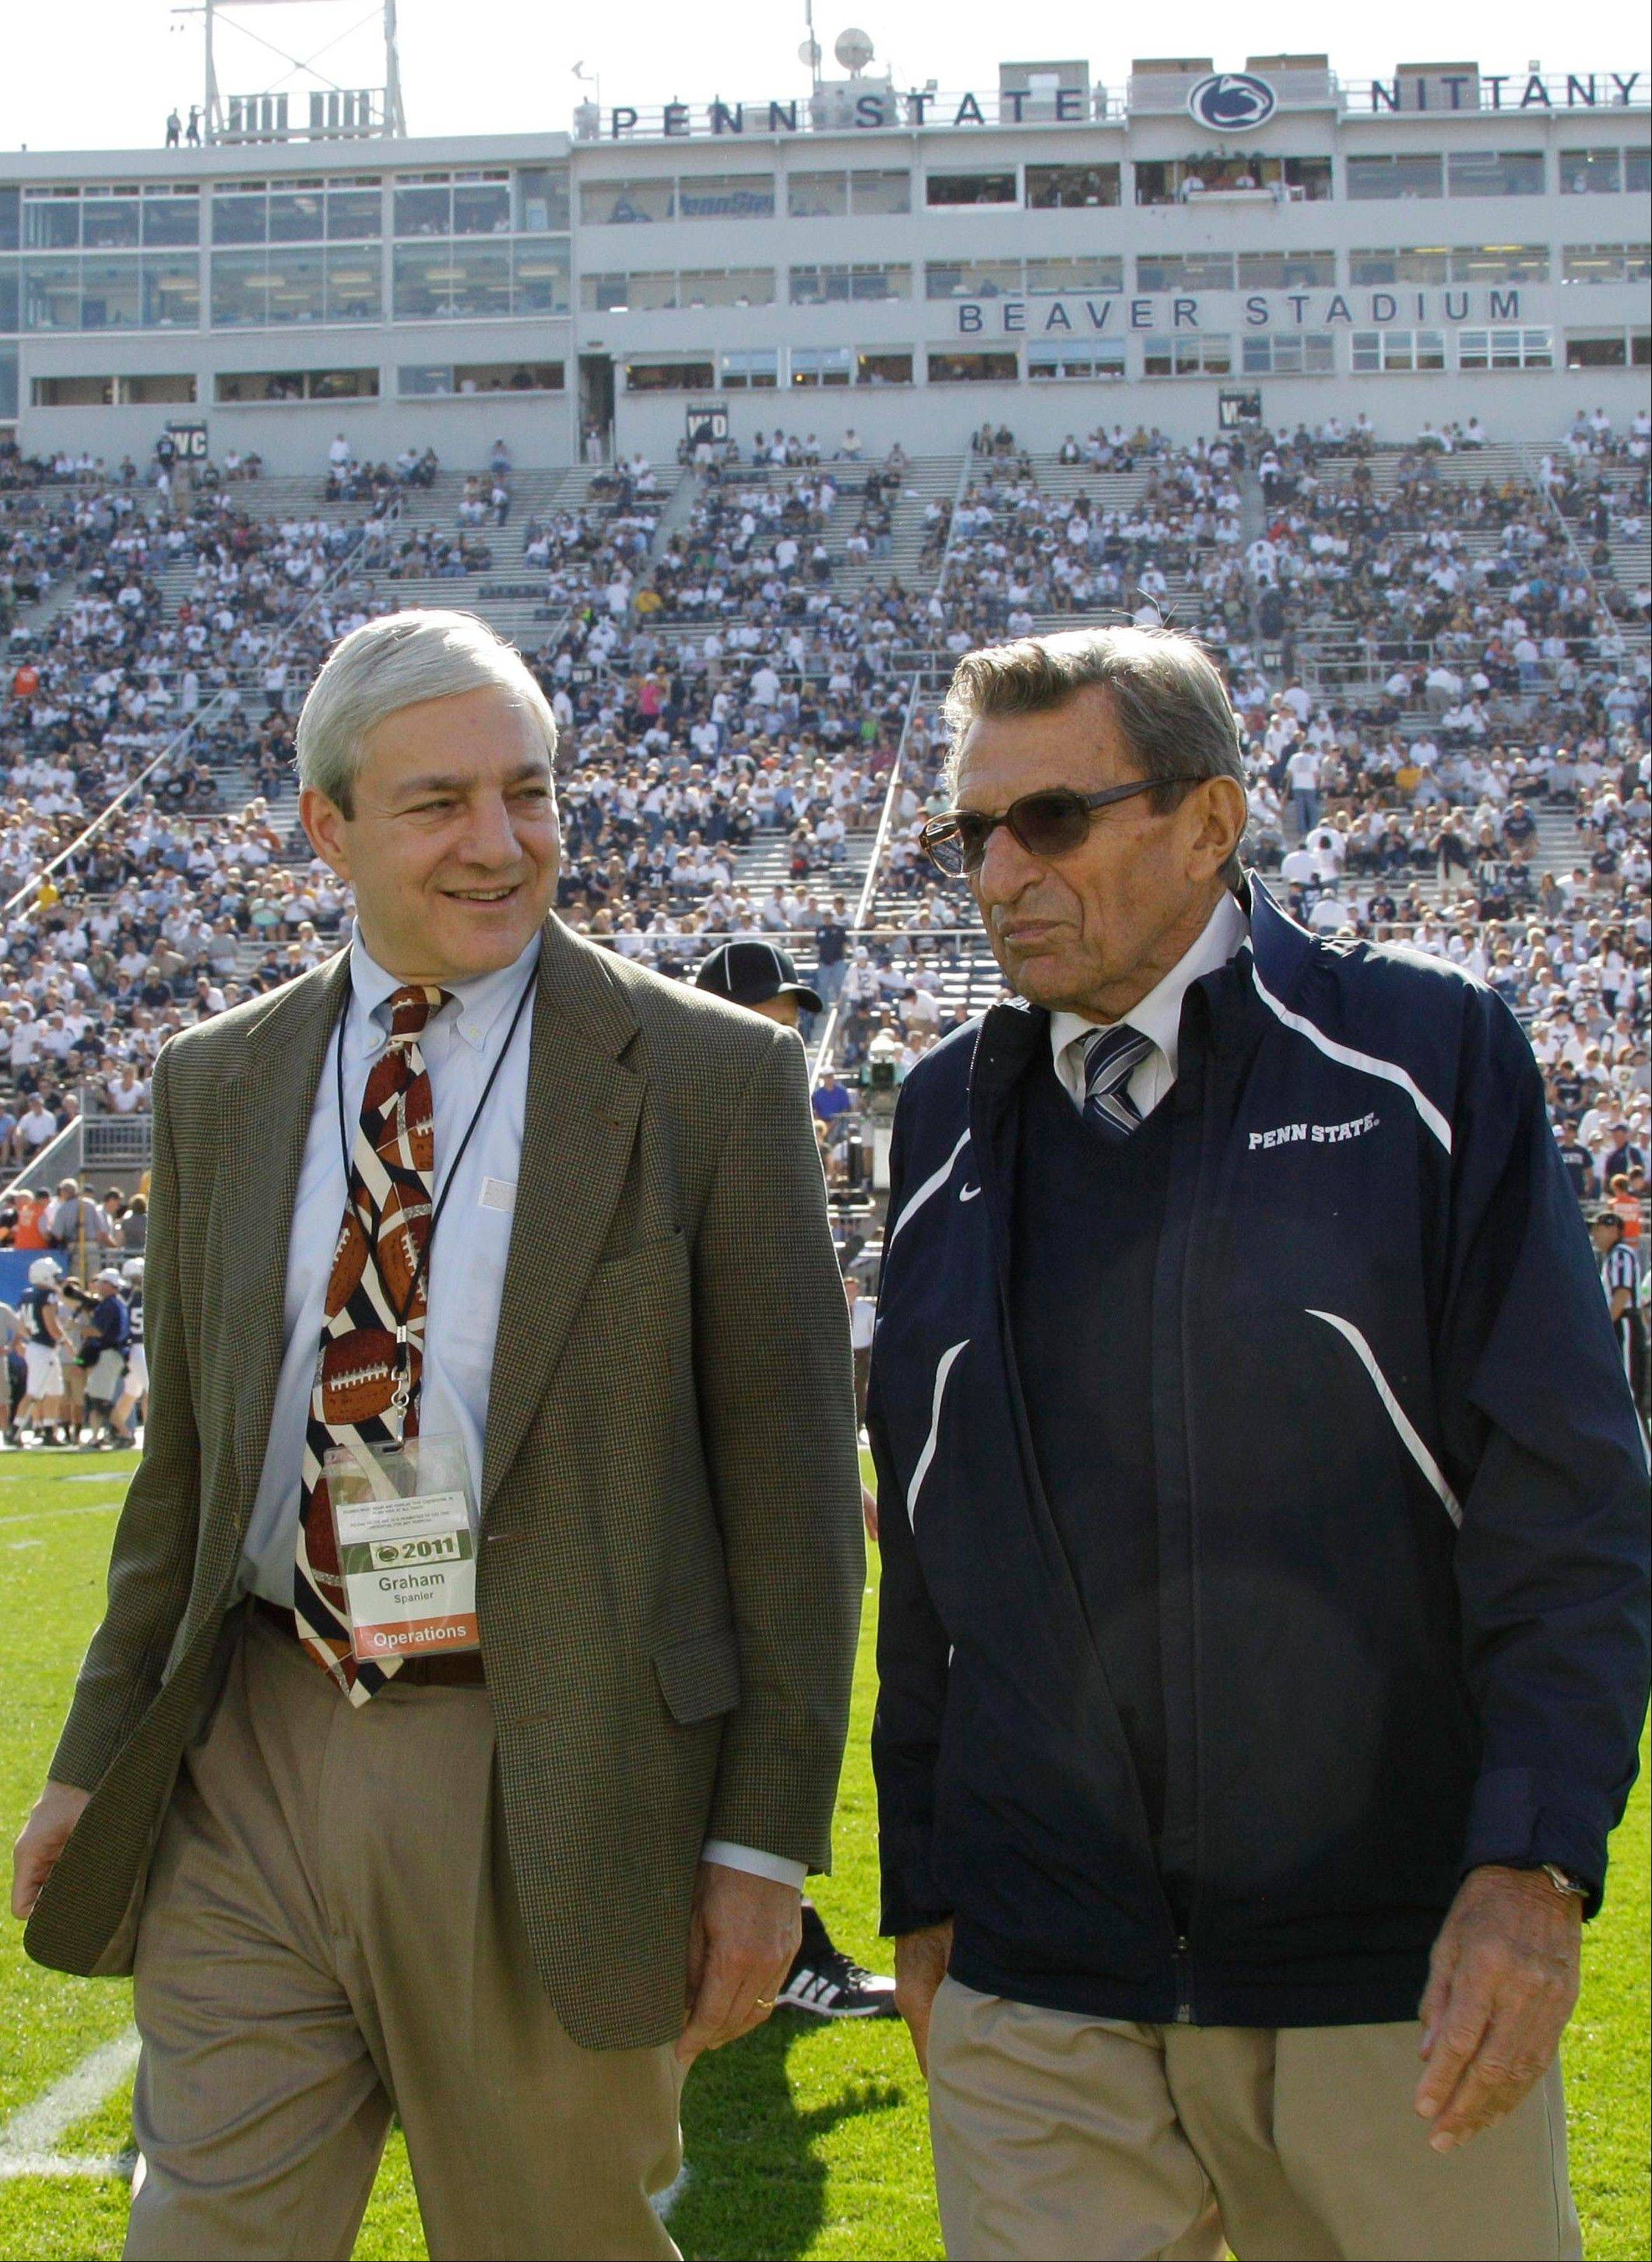 Former Penn State president Graham Spanier, left, is accused of perjury, endangering children and other charges in the Jerry Sandusky molestation scandal. According to online court records charges were filed Thursday against Penn State�s ex-president and two other administrators in what prosecutors called �a conspiracy of silence.�